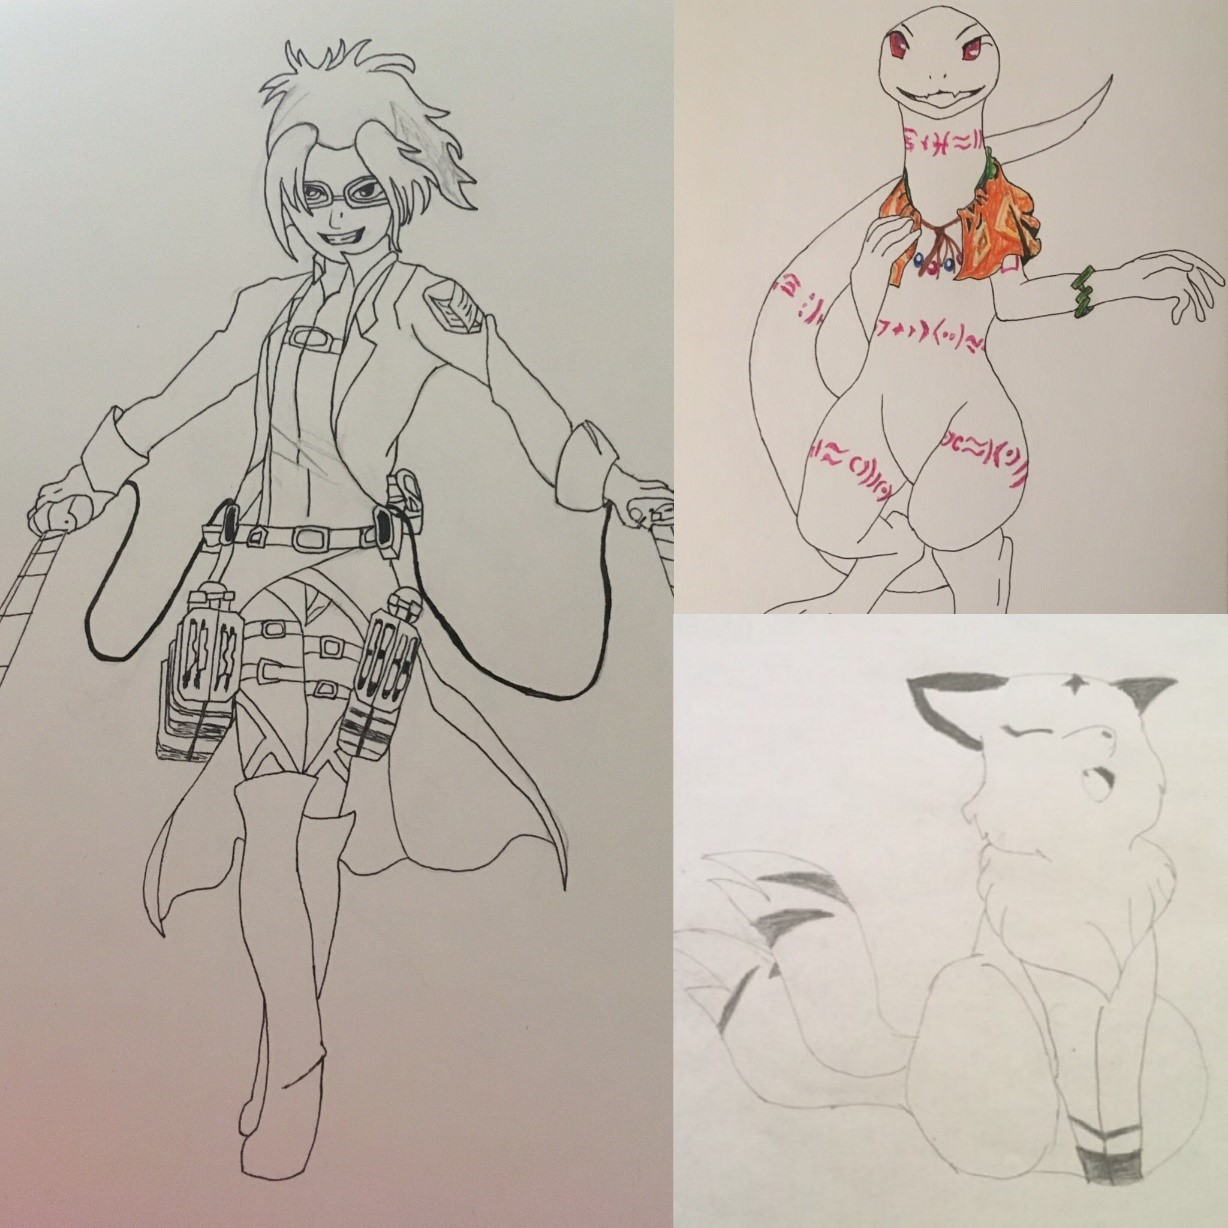 This photo is of anime drawings from various anime series.